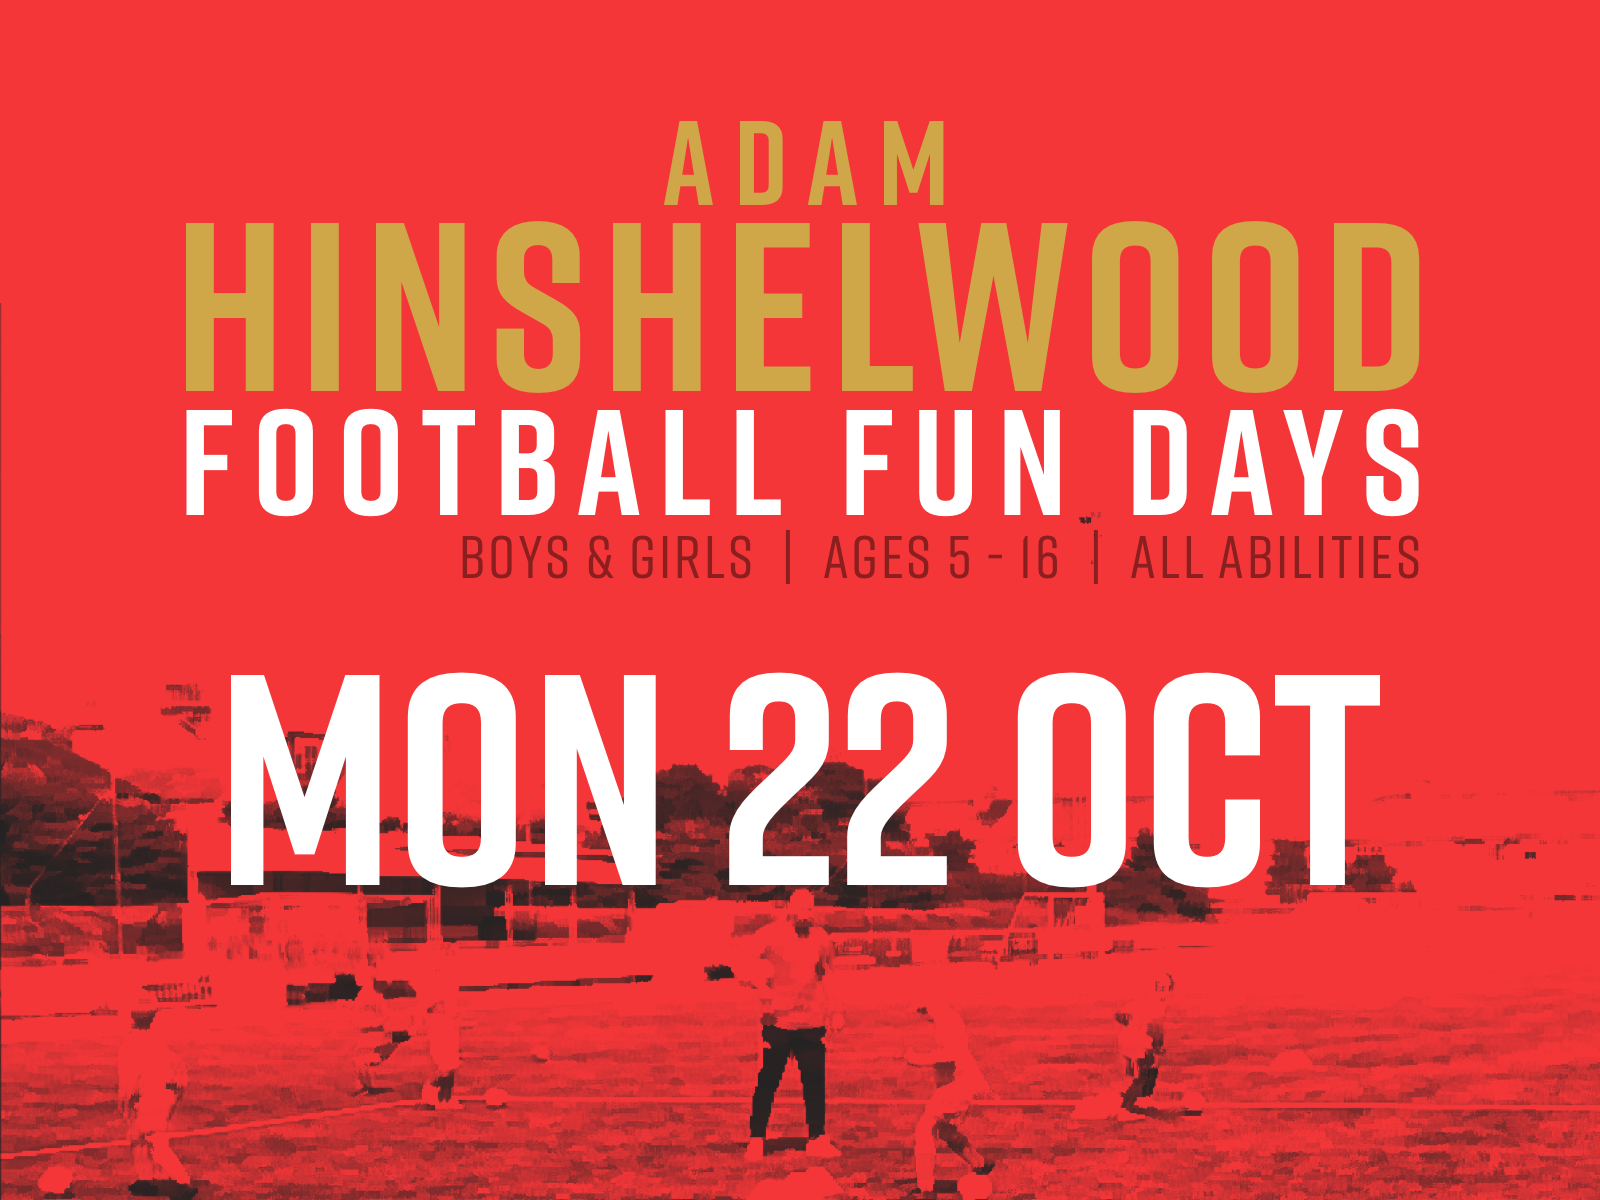 Read the full article - Adam Hinshelwood Football Funday – 22nd Oct | BOOK NOW